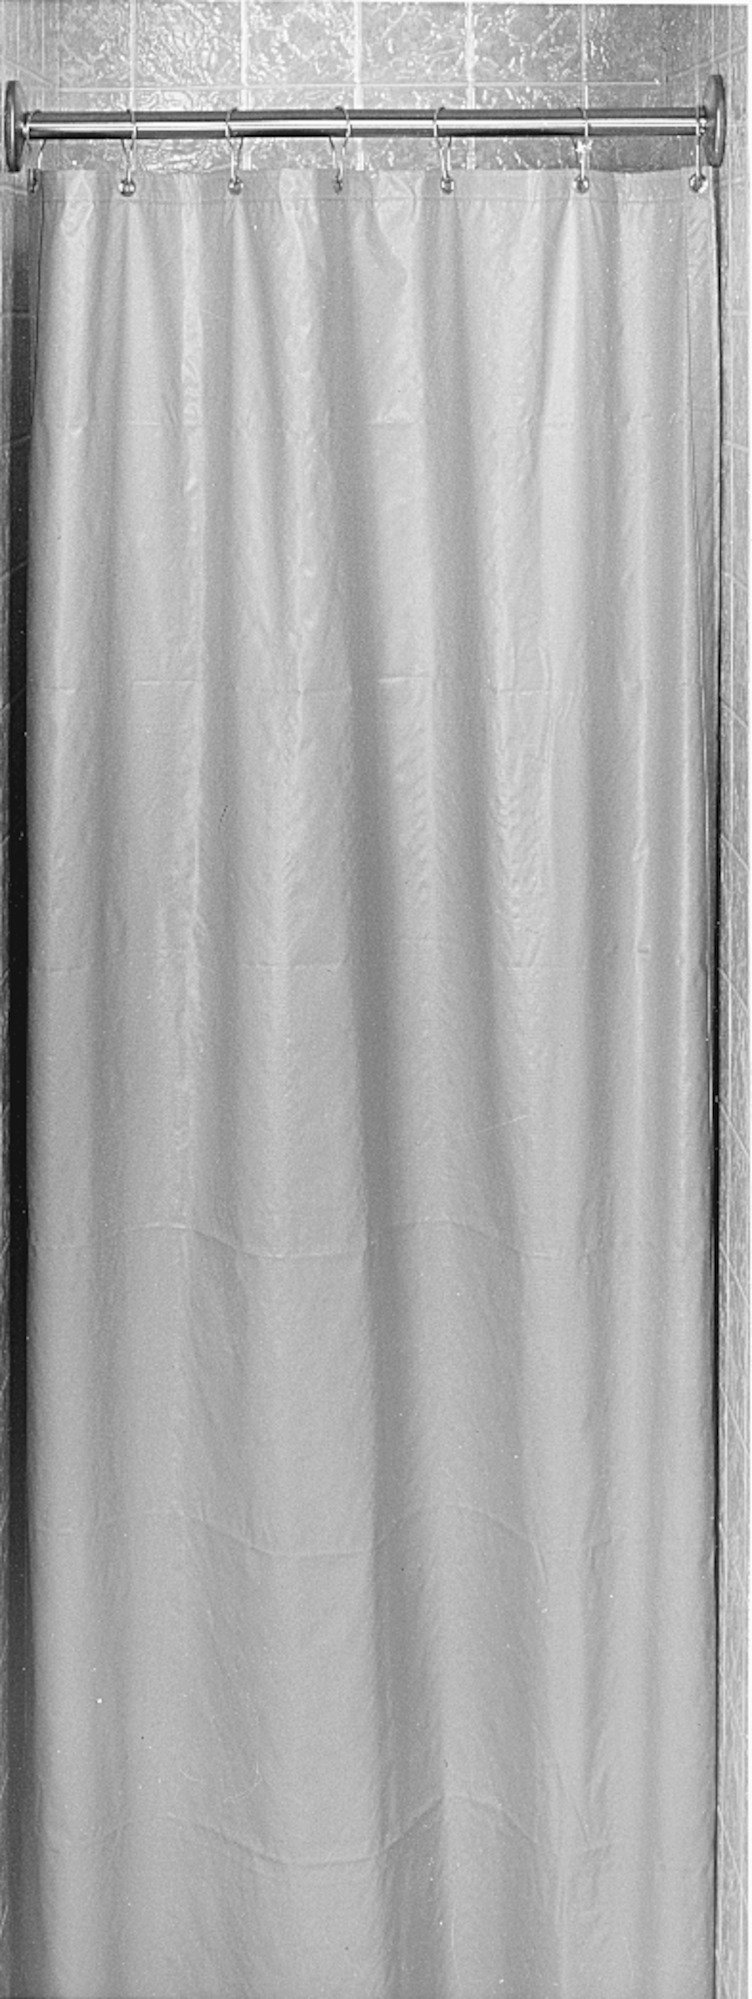 Shower Curtains 9537-607200 - Accurate Door & Hardware, Inc